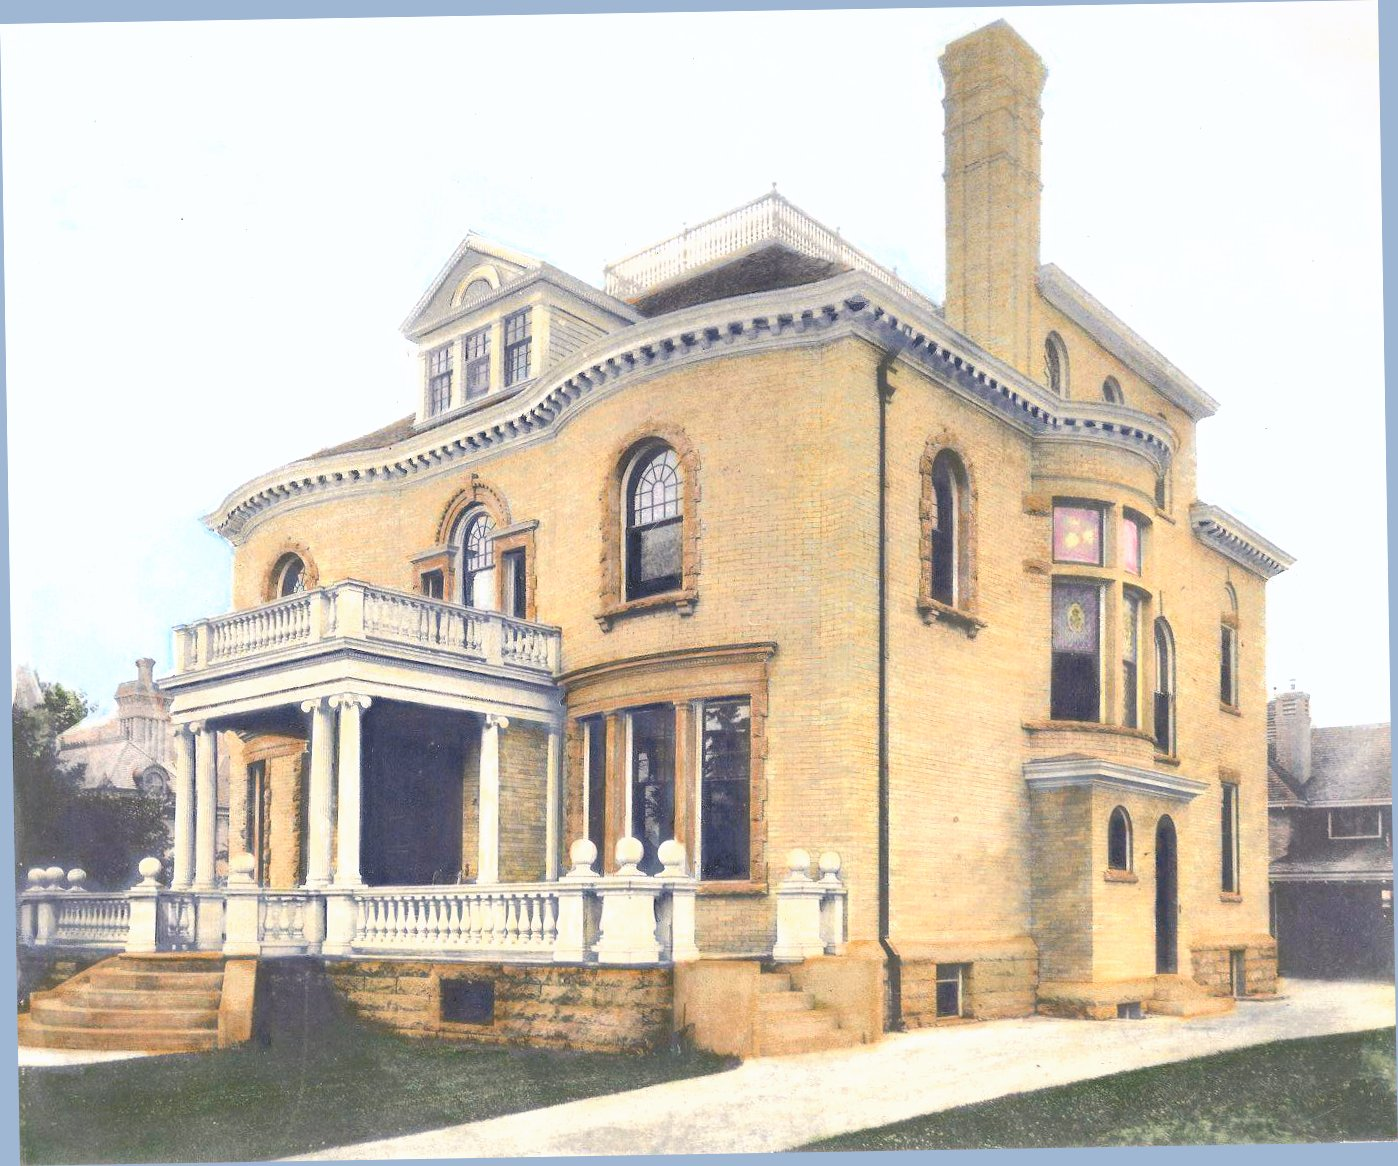 Hinkle-Murphy House, 1886 619 South 10th Street Minneapolis, Minnesota Architect: William Channing Whitney Exterior: Looking from South 10th Street Hand-colored photograph by Donna Webb ca. 1984 Northwestern Architect Supplement Vol. 6. No. 7 1886 Minneapolis Library History Collection